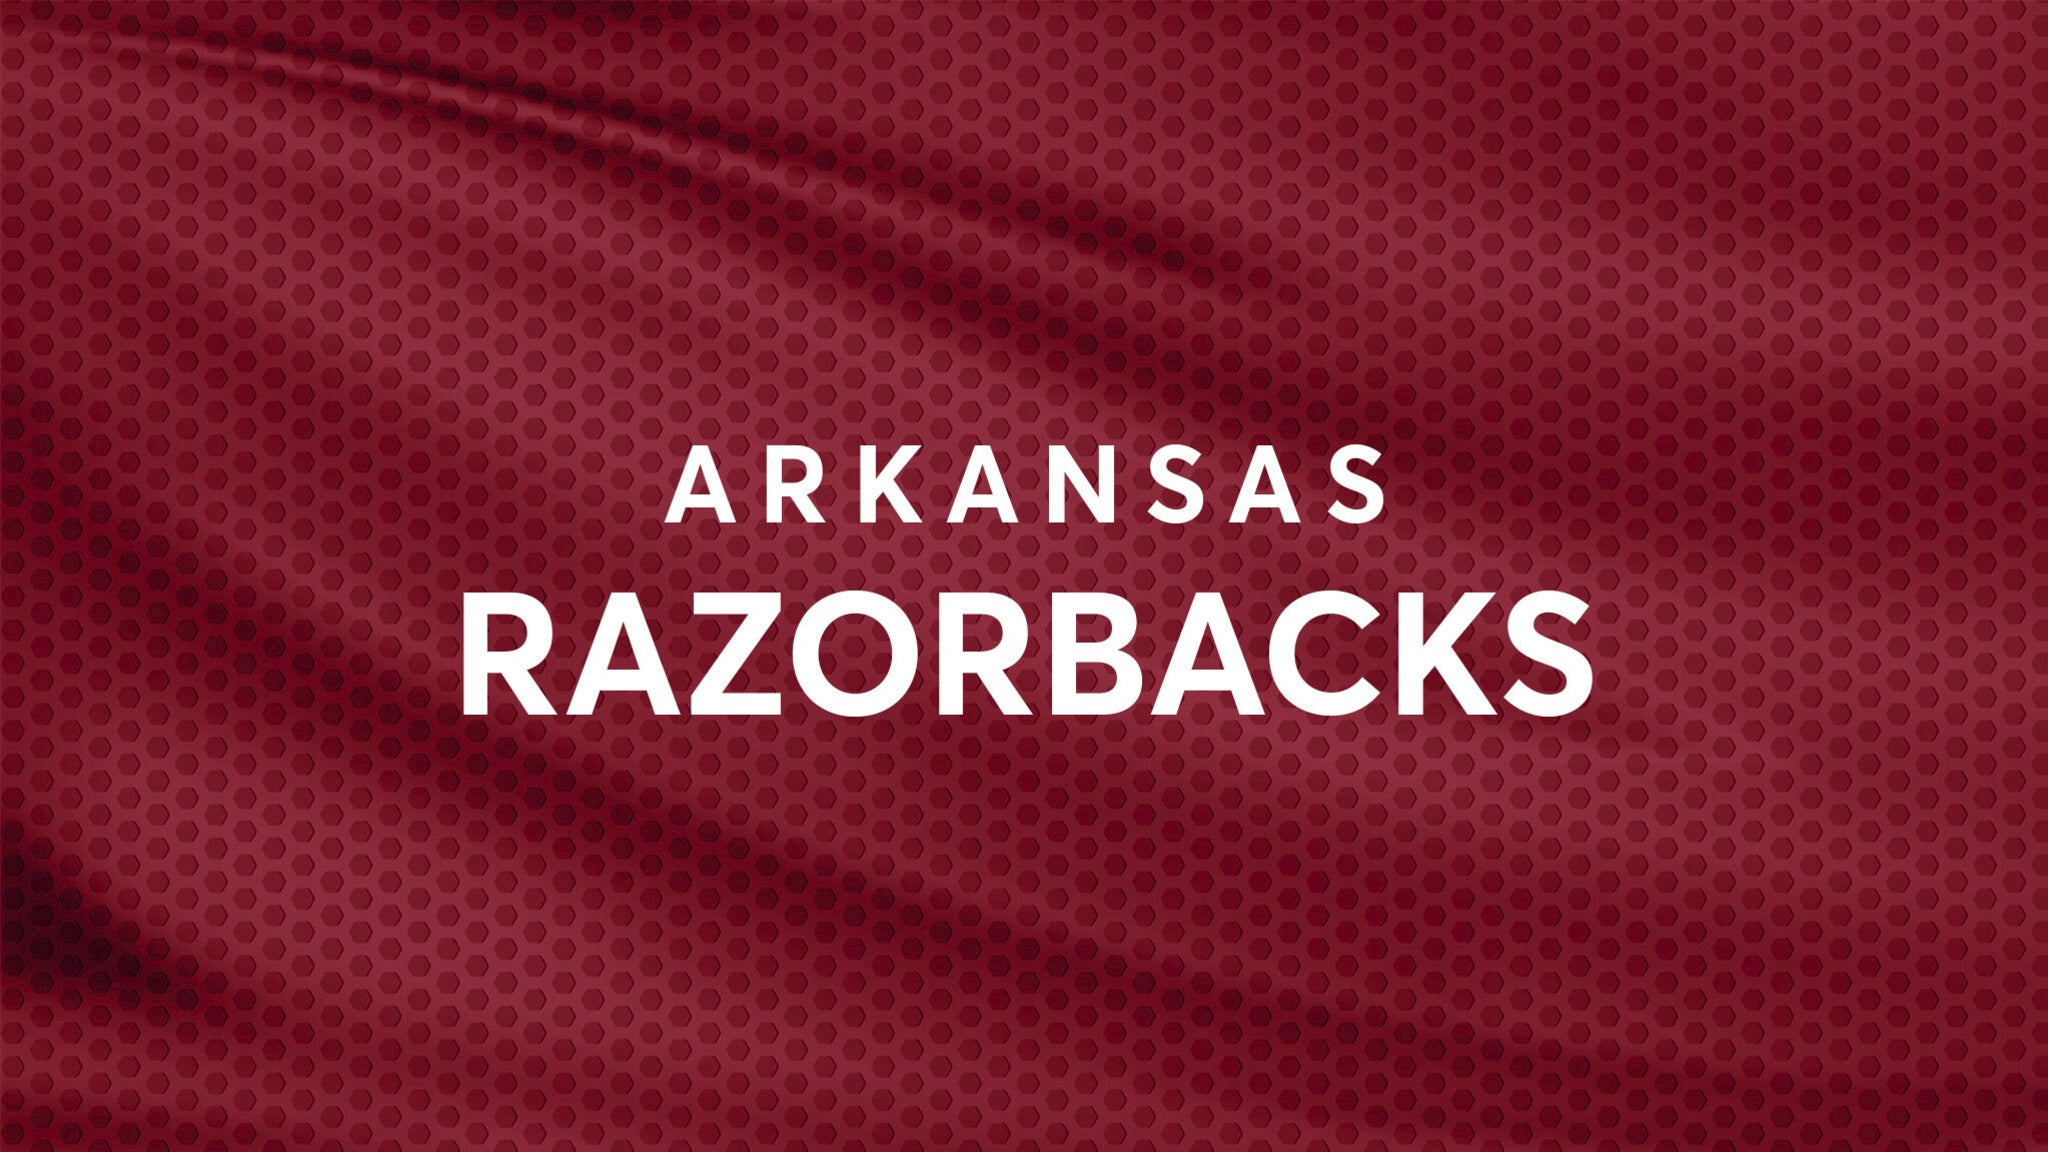 Arkansas Razorbacks Football live